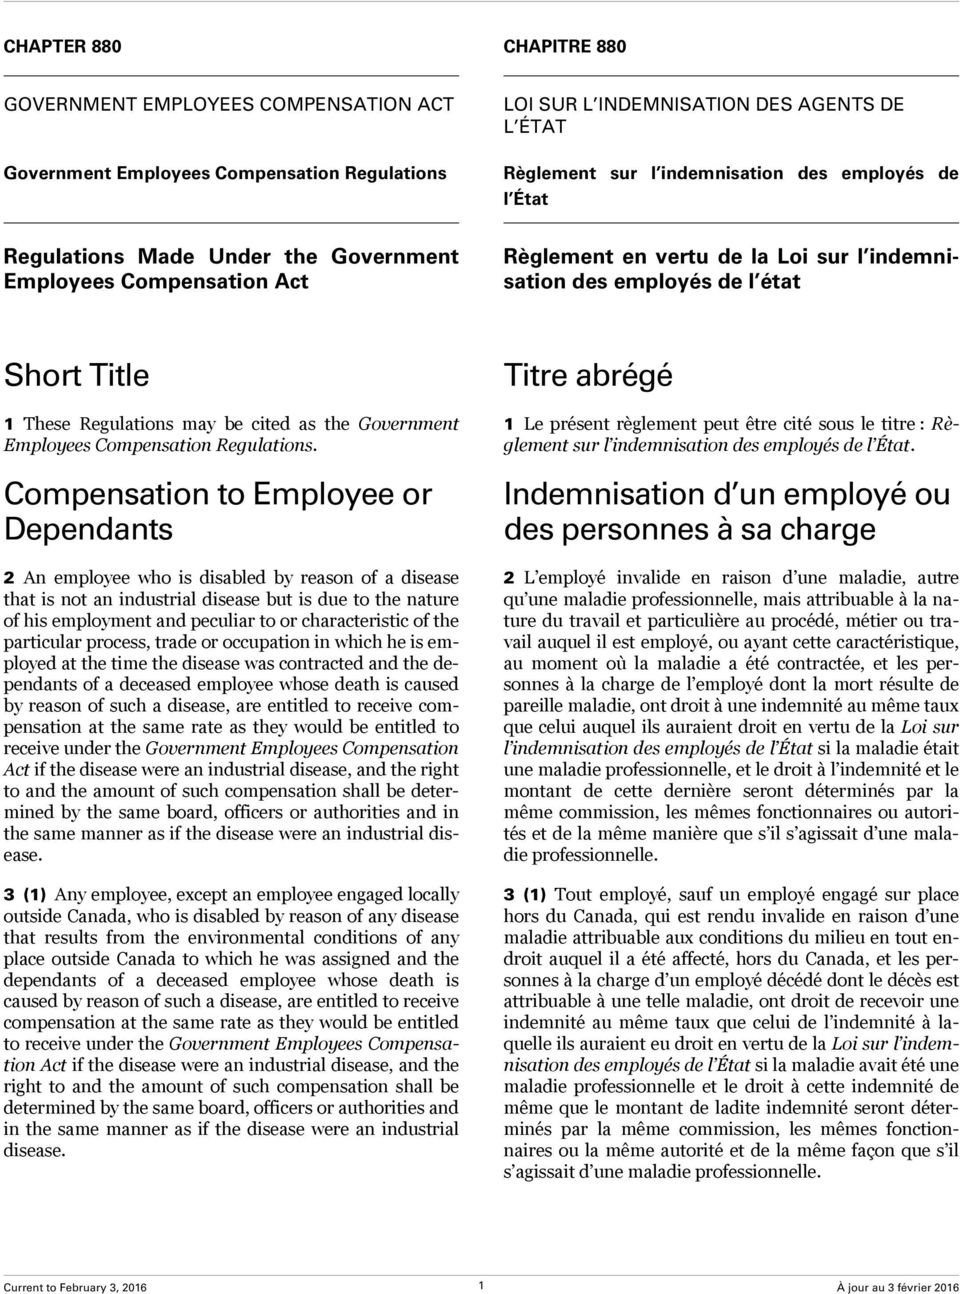 Government Employees Compensation Regulations.